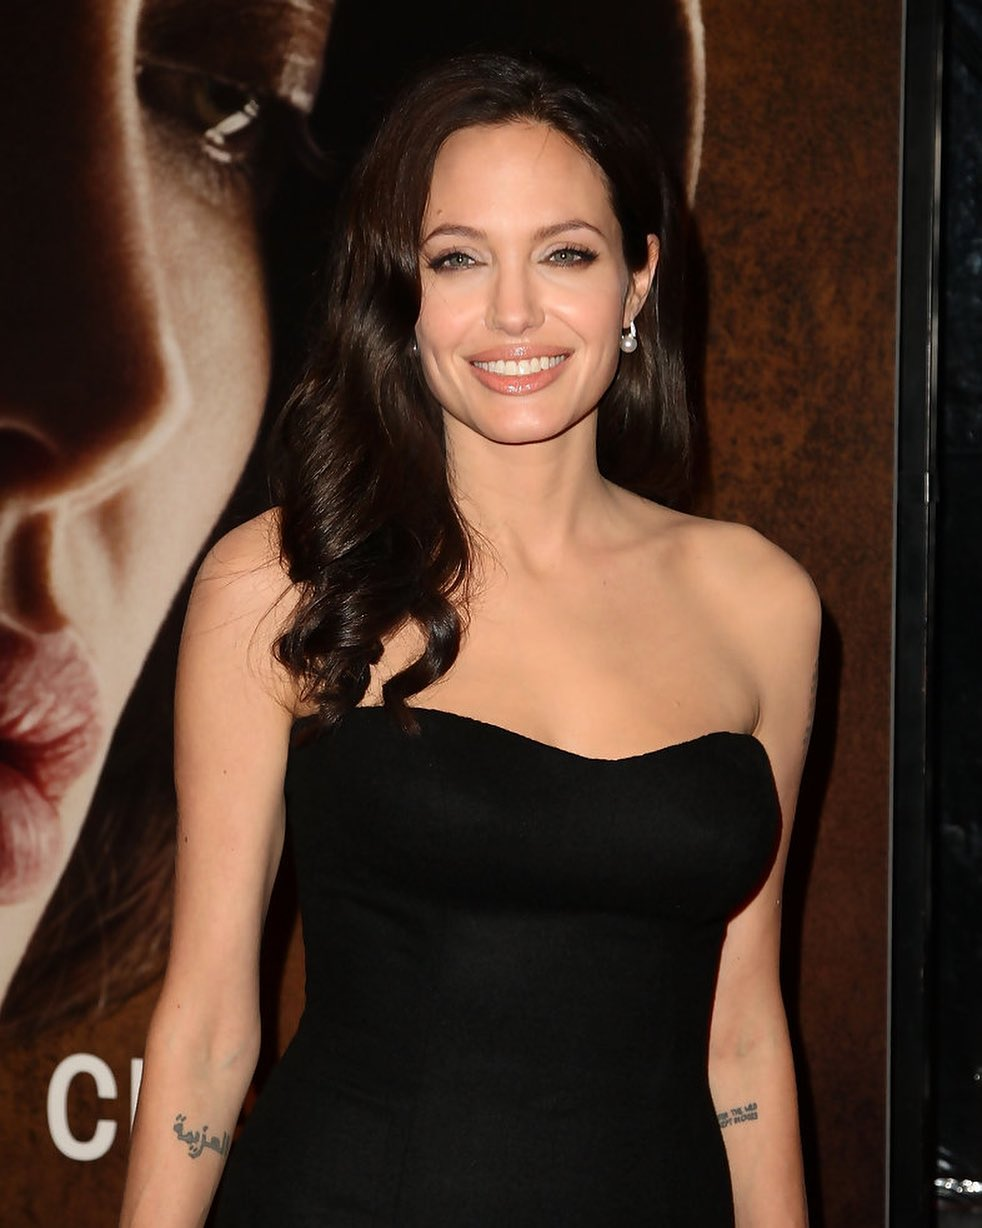 To do something good, it has to scare you. - Angelina Jolie